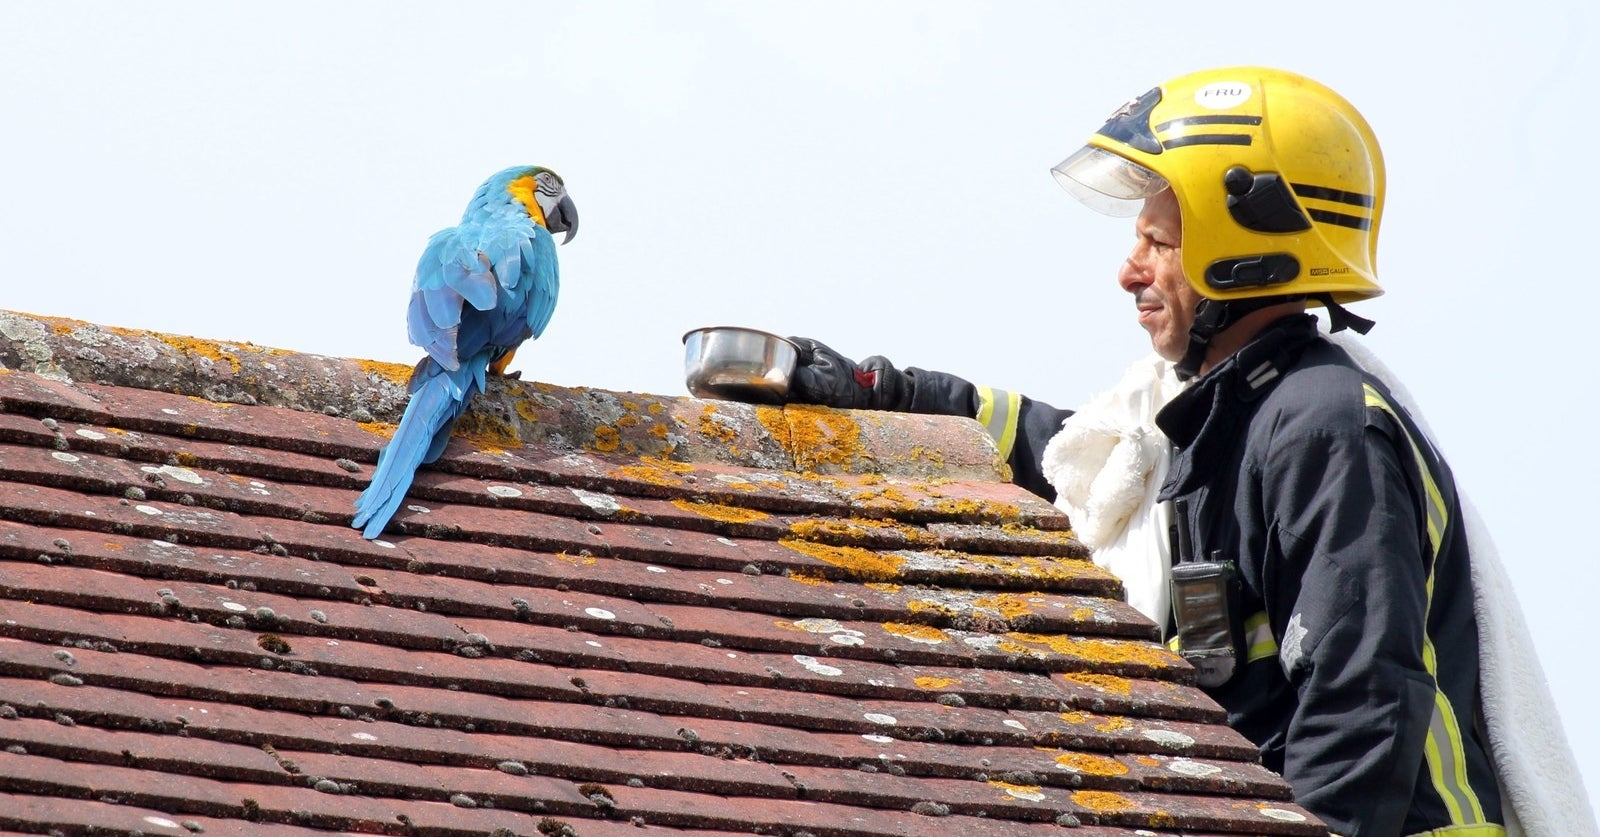 """A """"Potty-Mouthed Parrot"""" Told A Firefighter Who Tried To Rescue Her From A Rooftop To """"Fuck Off"""""""